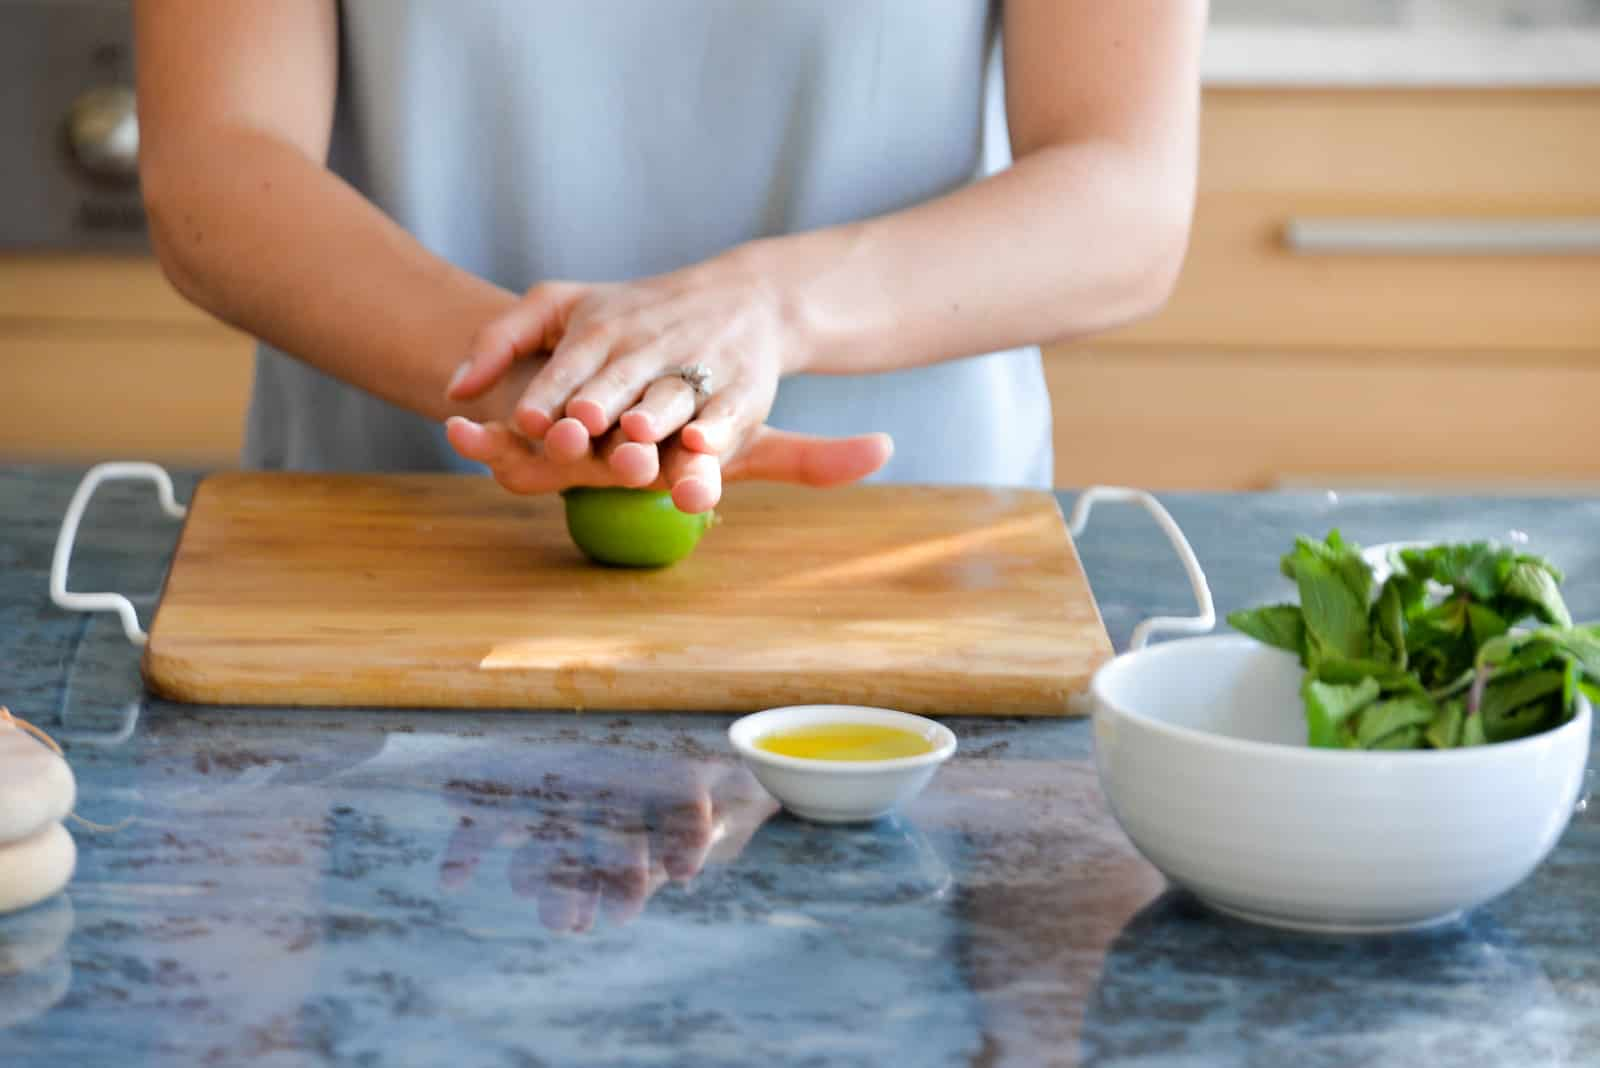 two hands of a woman rolling a lime on a bamboo cutting board